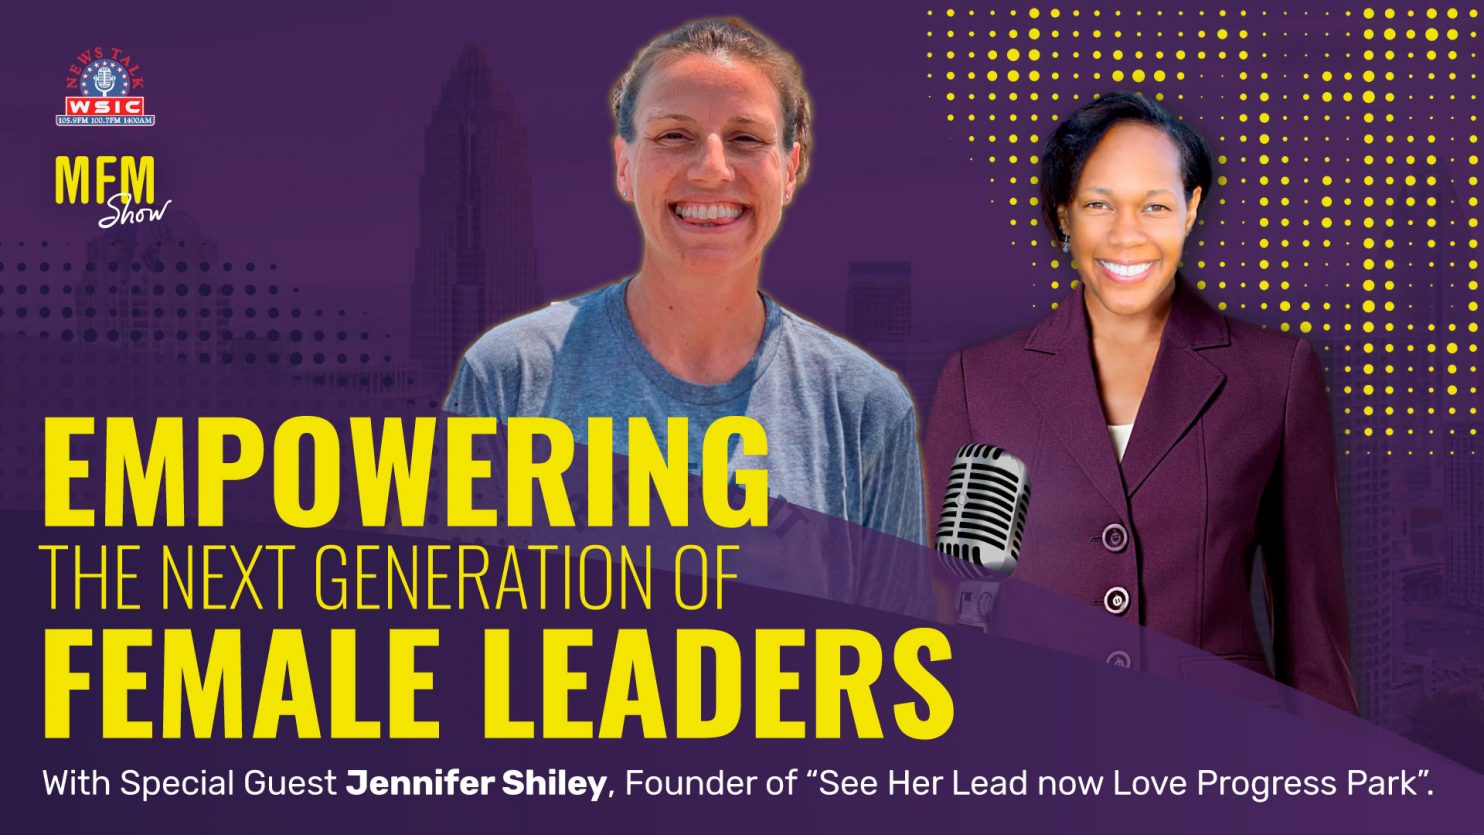 Empowering the Next Generation of Female Leaders with Jennifer Shiley